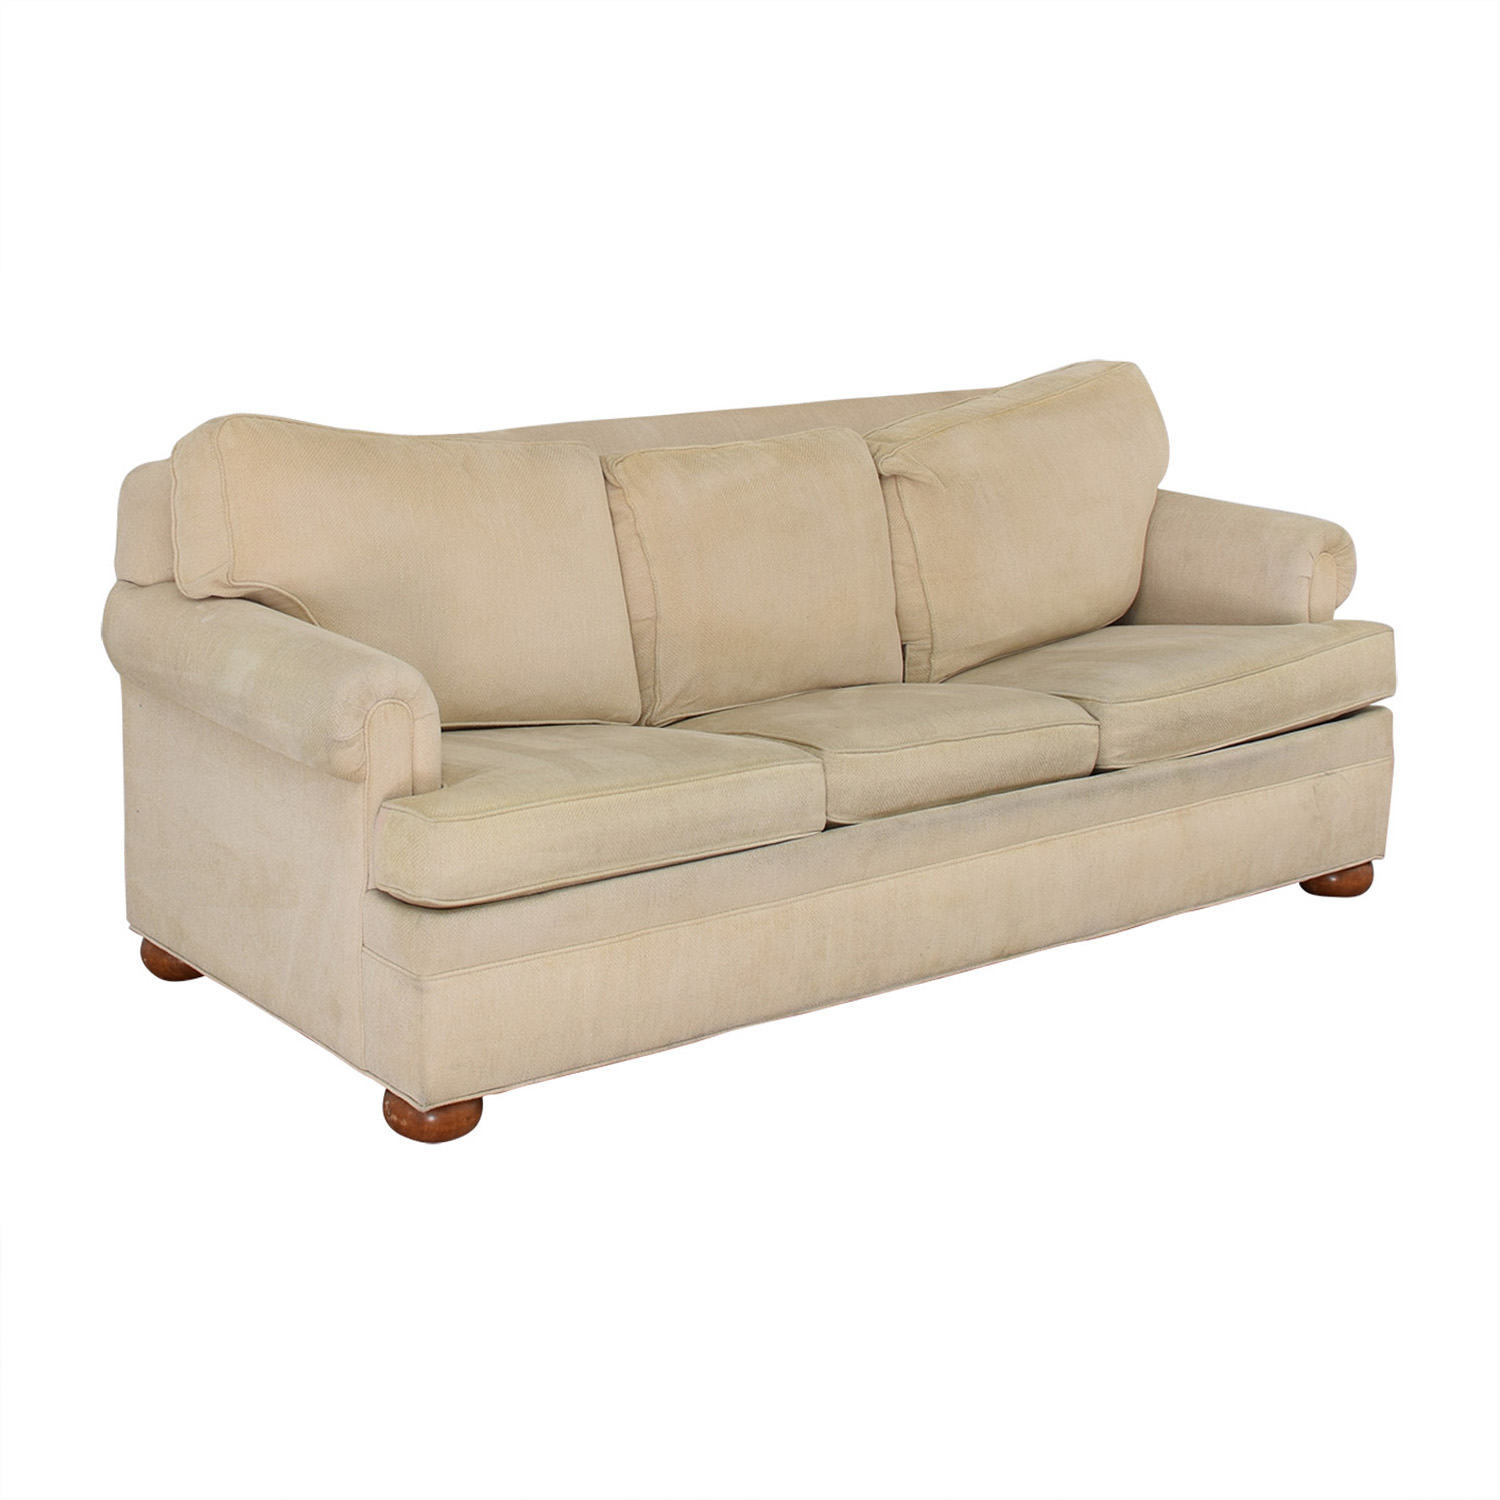 Ethan Allen Off White Three-Cushion Queen Convertible Sofa sale